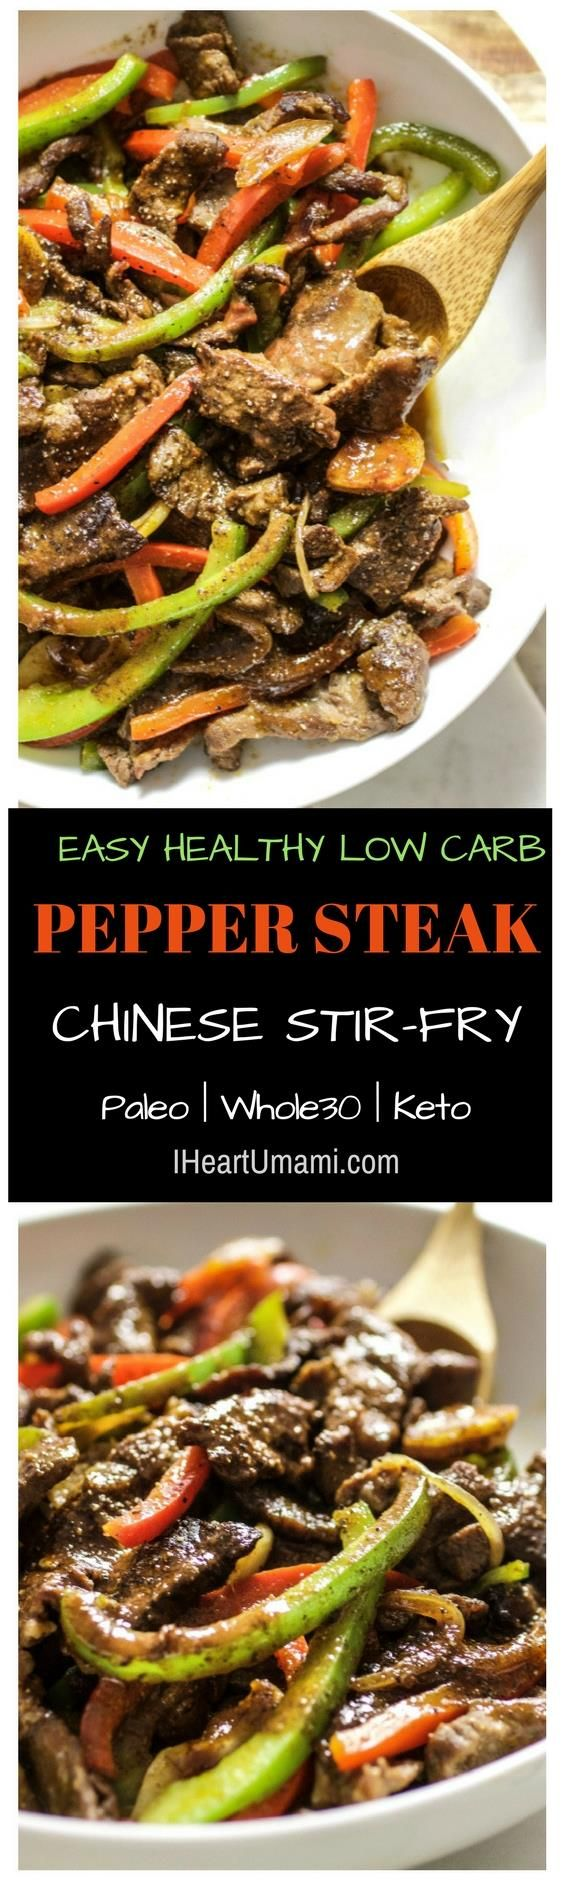 The best Saucy Paleo Chinese Pepper Steak Stir-Fry recipe with homemade Worcestershire steak sauce. This healthy Pepper Steak is easy, quick, low carb, and gluten-free with no added sugar. A healthy, delicious takeout recipe everyone in the family can enjoy! #Iheartumami #peppersteak #Stirfry #chineserecipe #easyrecipes #paleorecipes #Whole30peppersteak #Ketopeppersteak  via @iheartumami